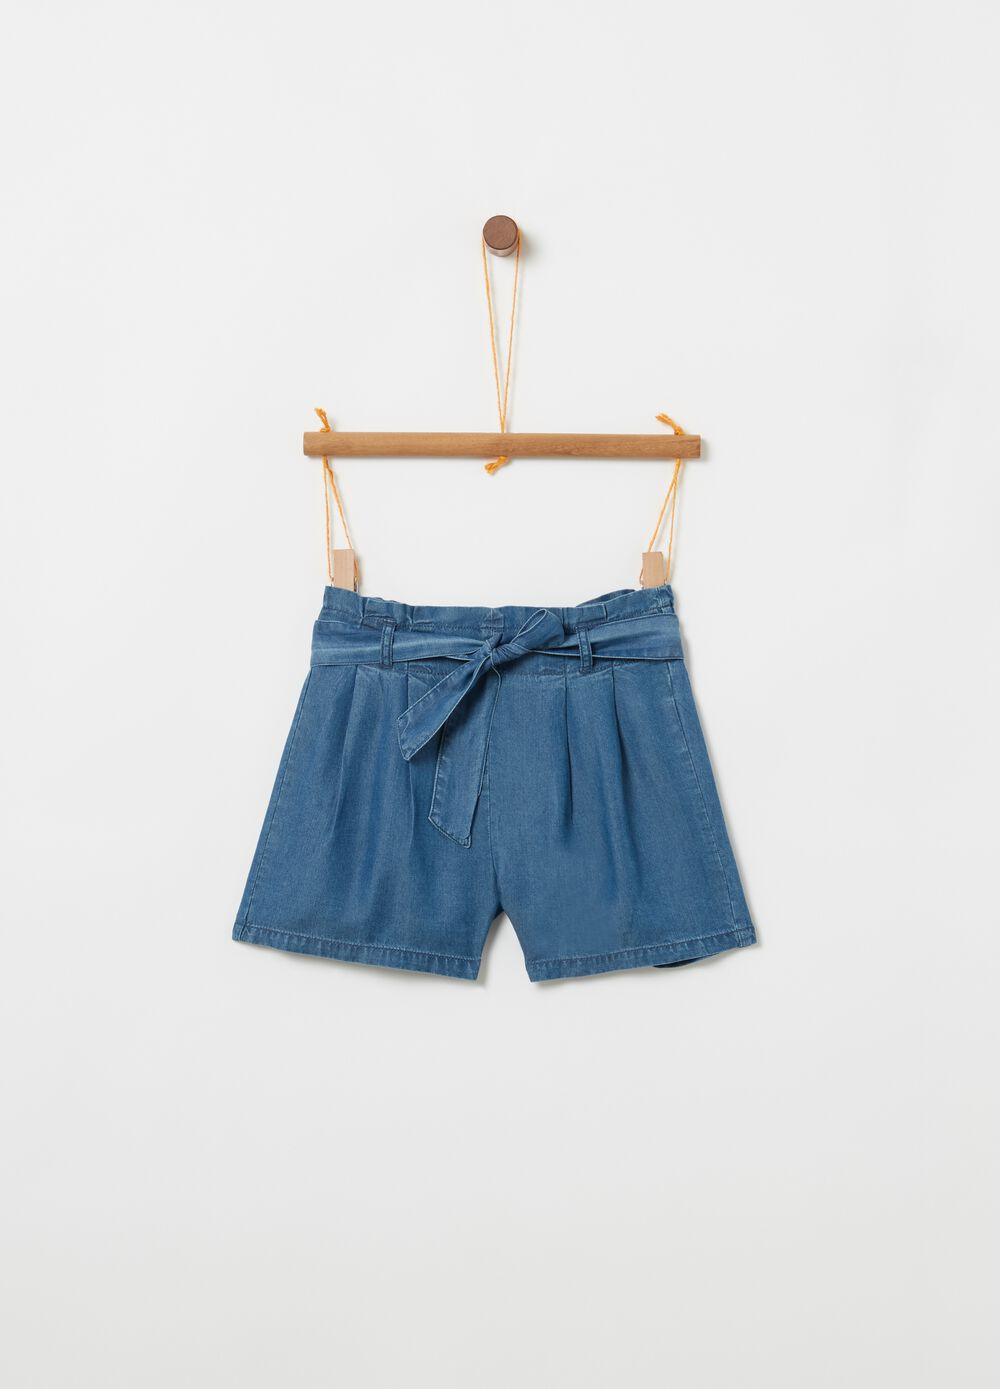 Shorts in 100% Lyocell with belt